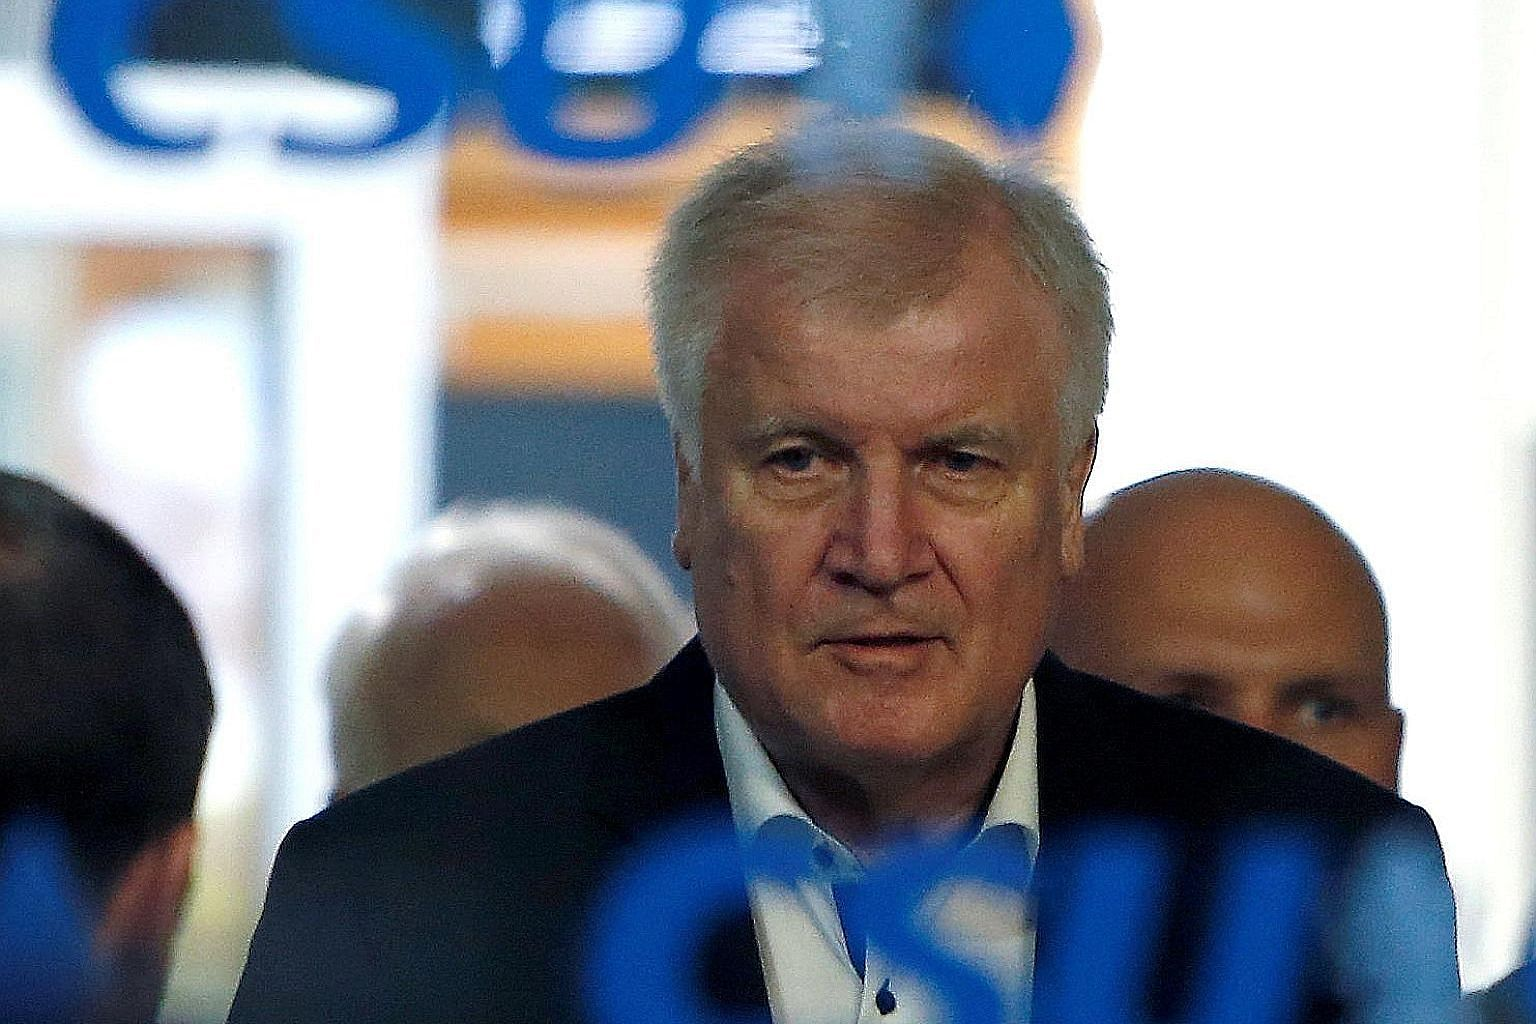 Interior Minister Horst Seehofer's resignation threat was not backed by his Bavarian colleagues